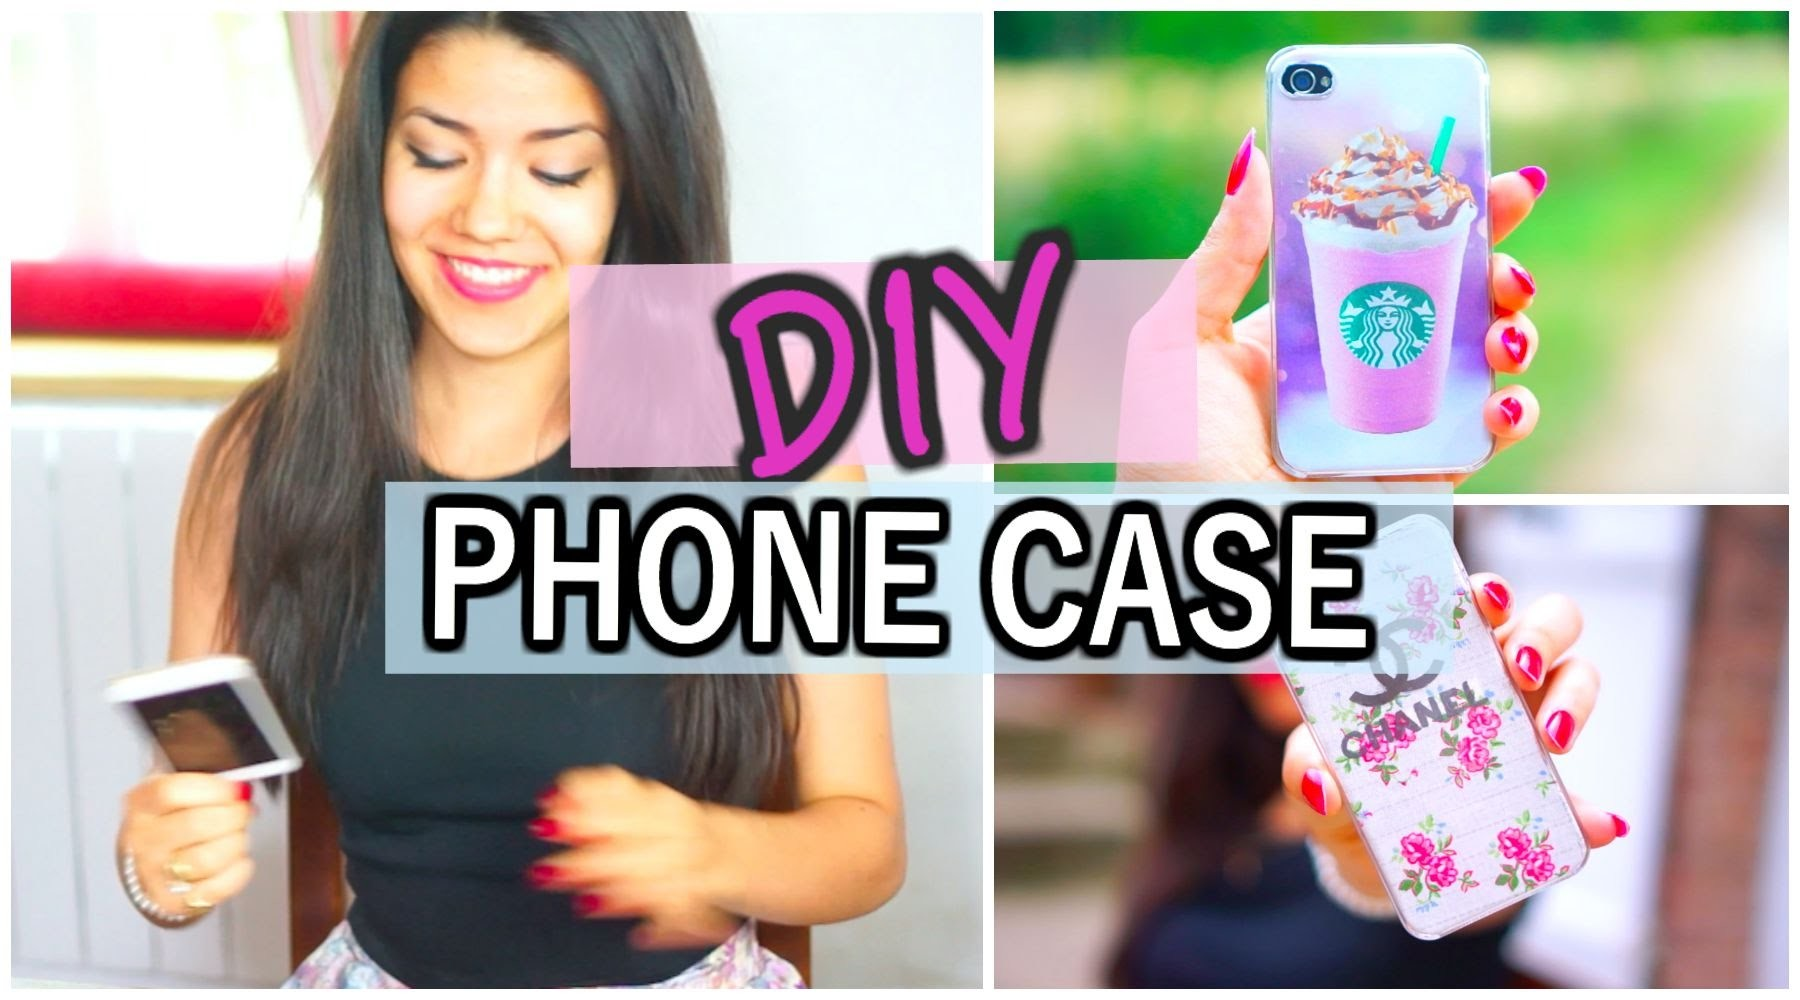 DIY PHONE CASE (Chanel, Starbucks, and more. )